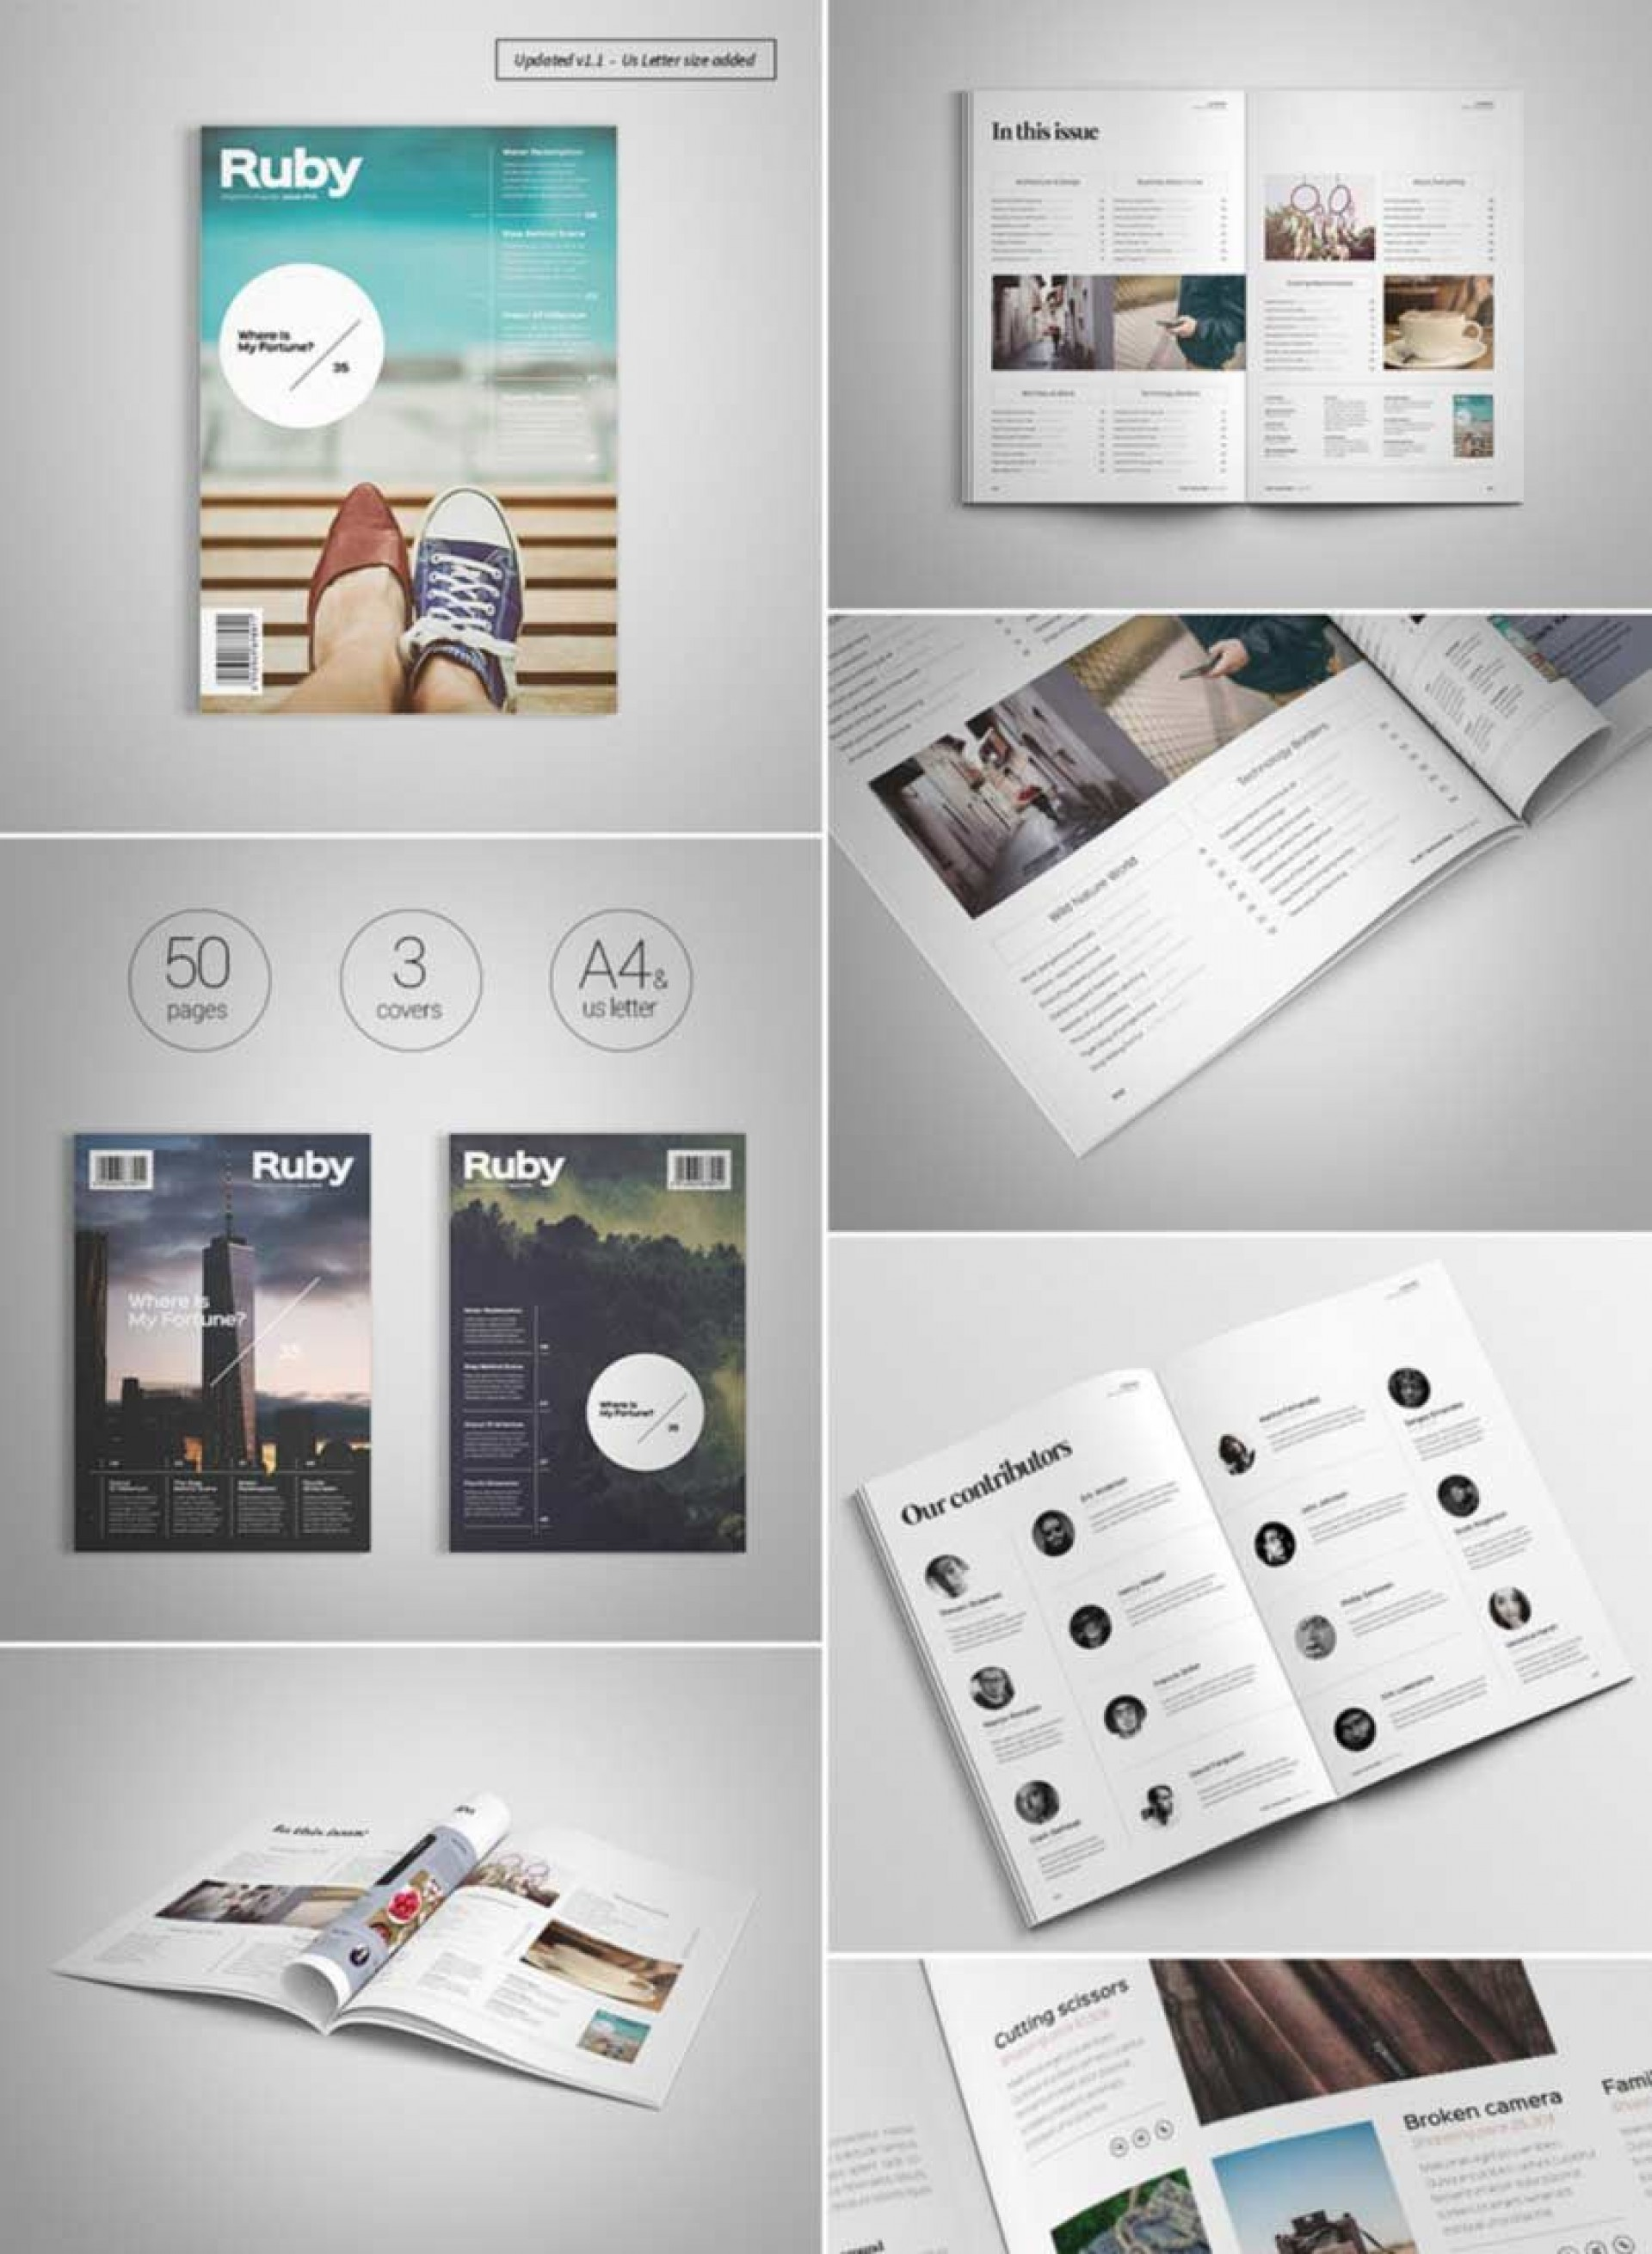 007 Exceptional School Magazine Layout Template Free Download Photo 1920